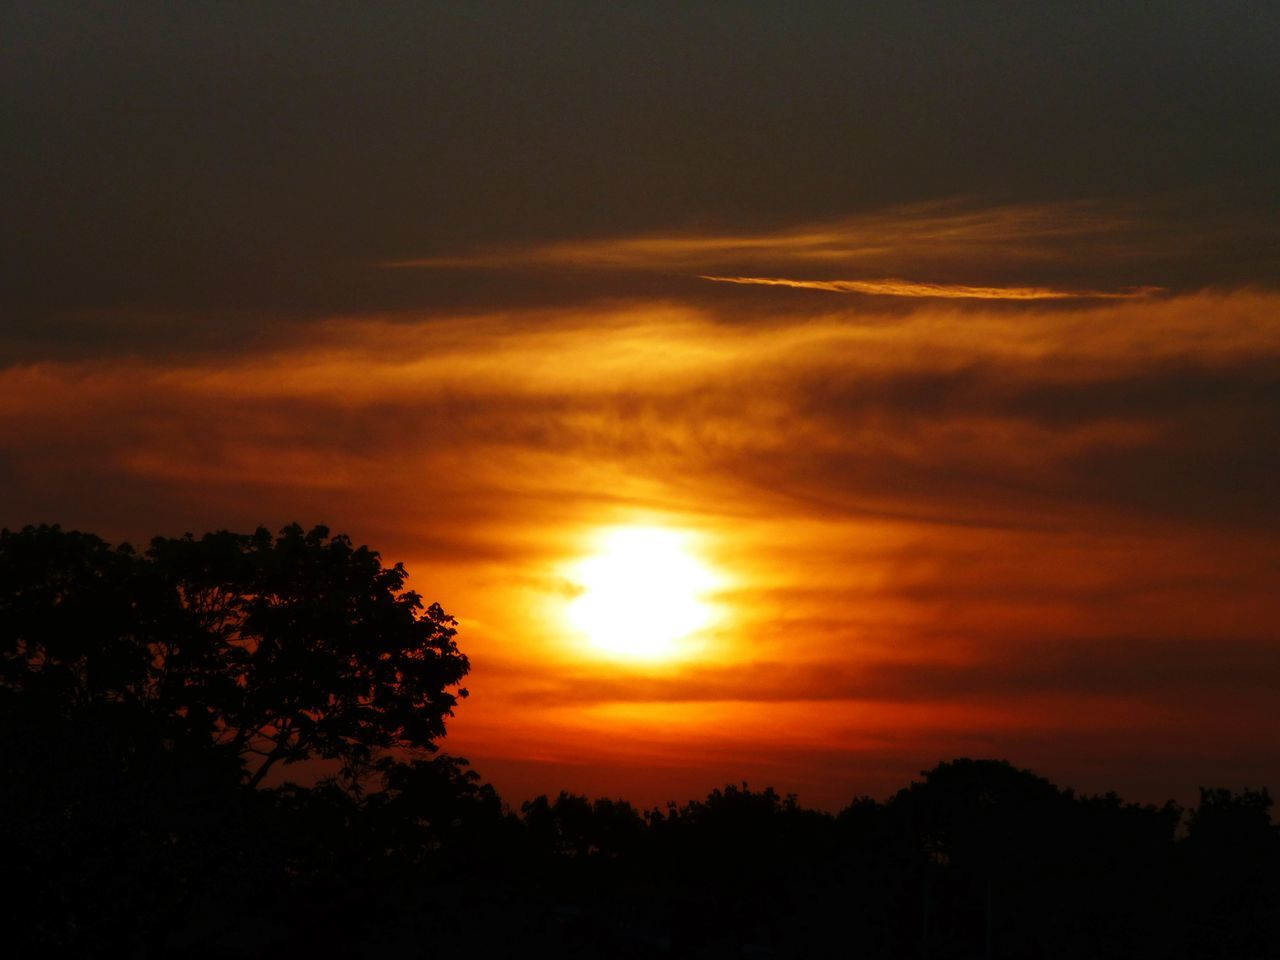 sunset, nature, tree, silhouette, beauty in nature, scenics, sky, tranquility, sun, tranquil scene, no people, growth, outdoors